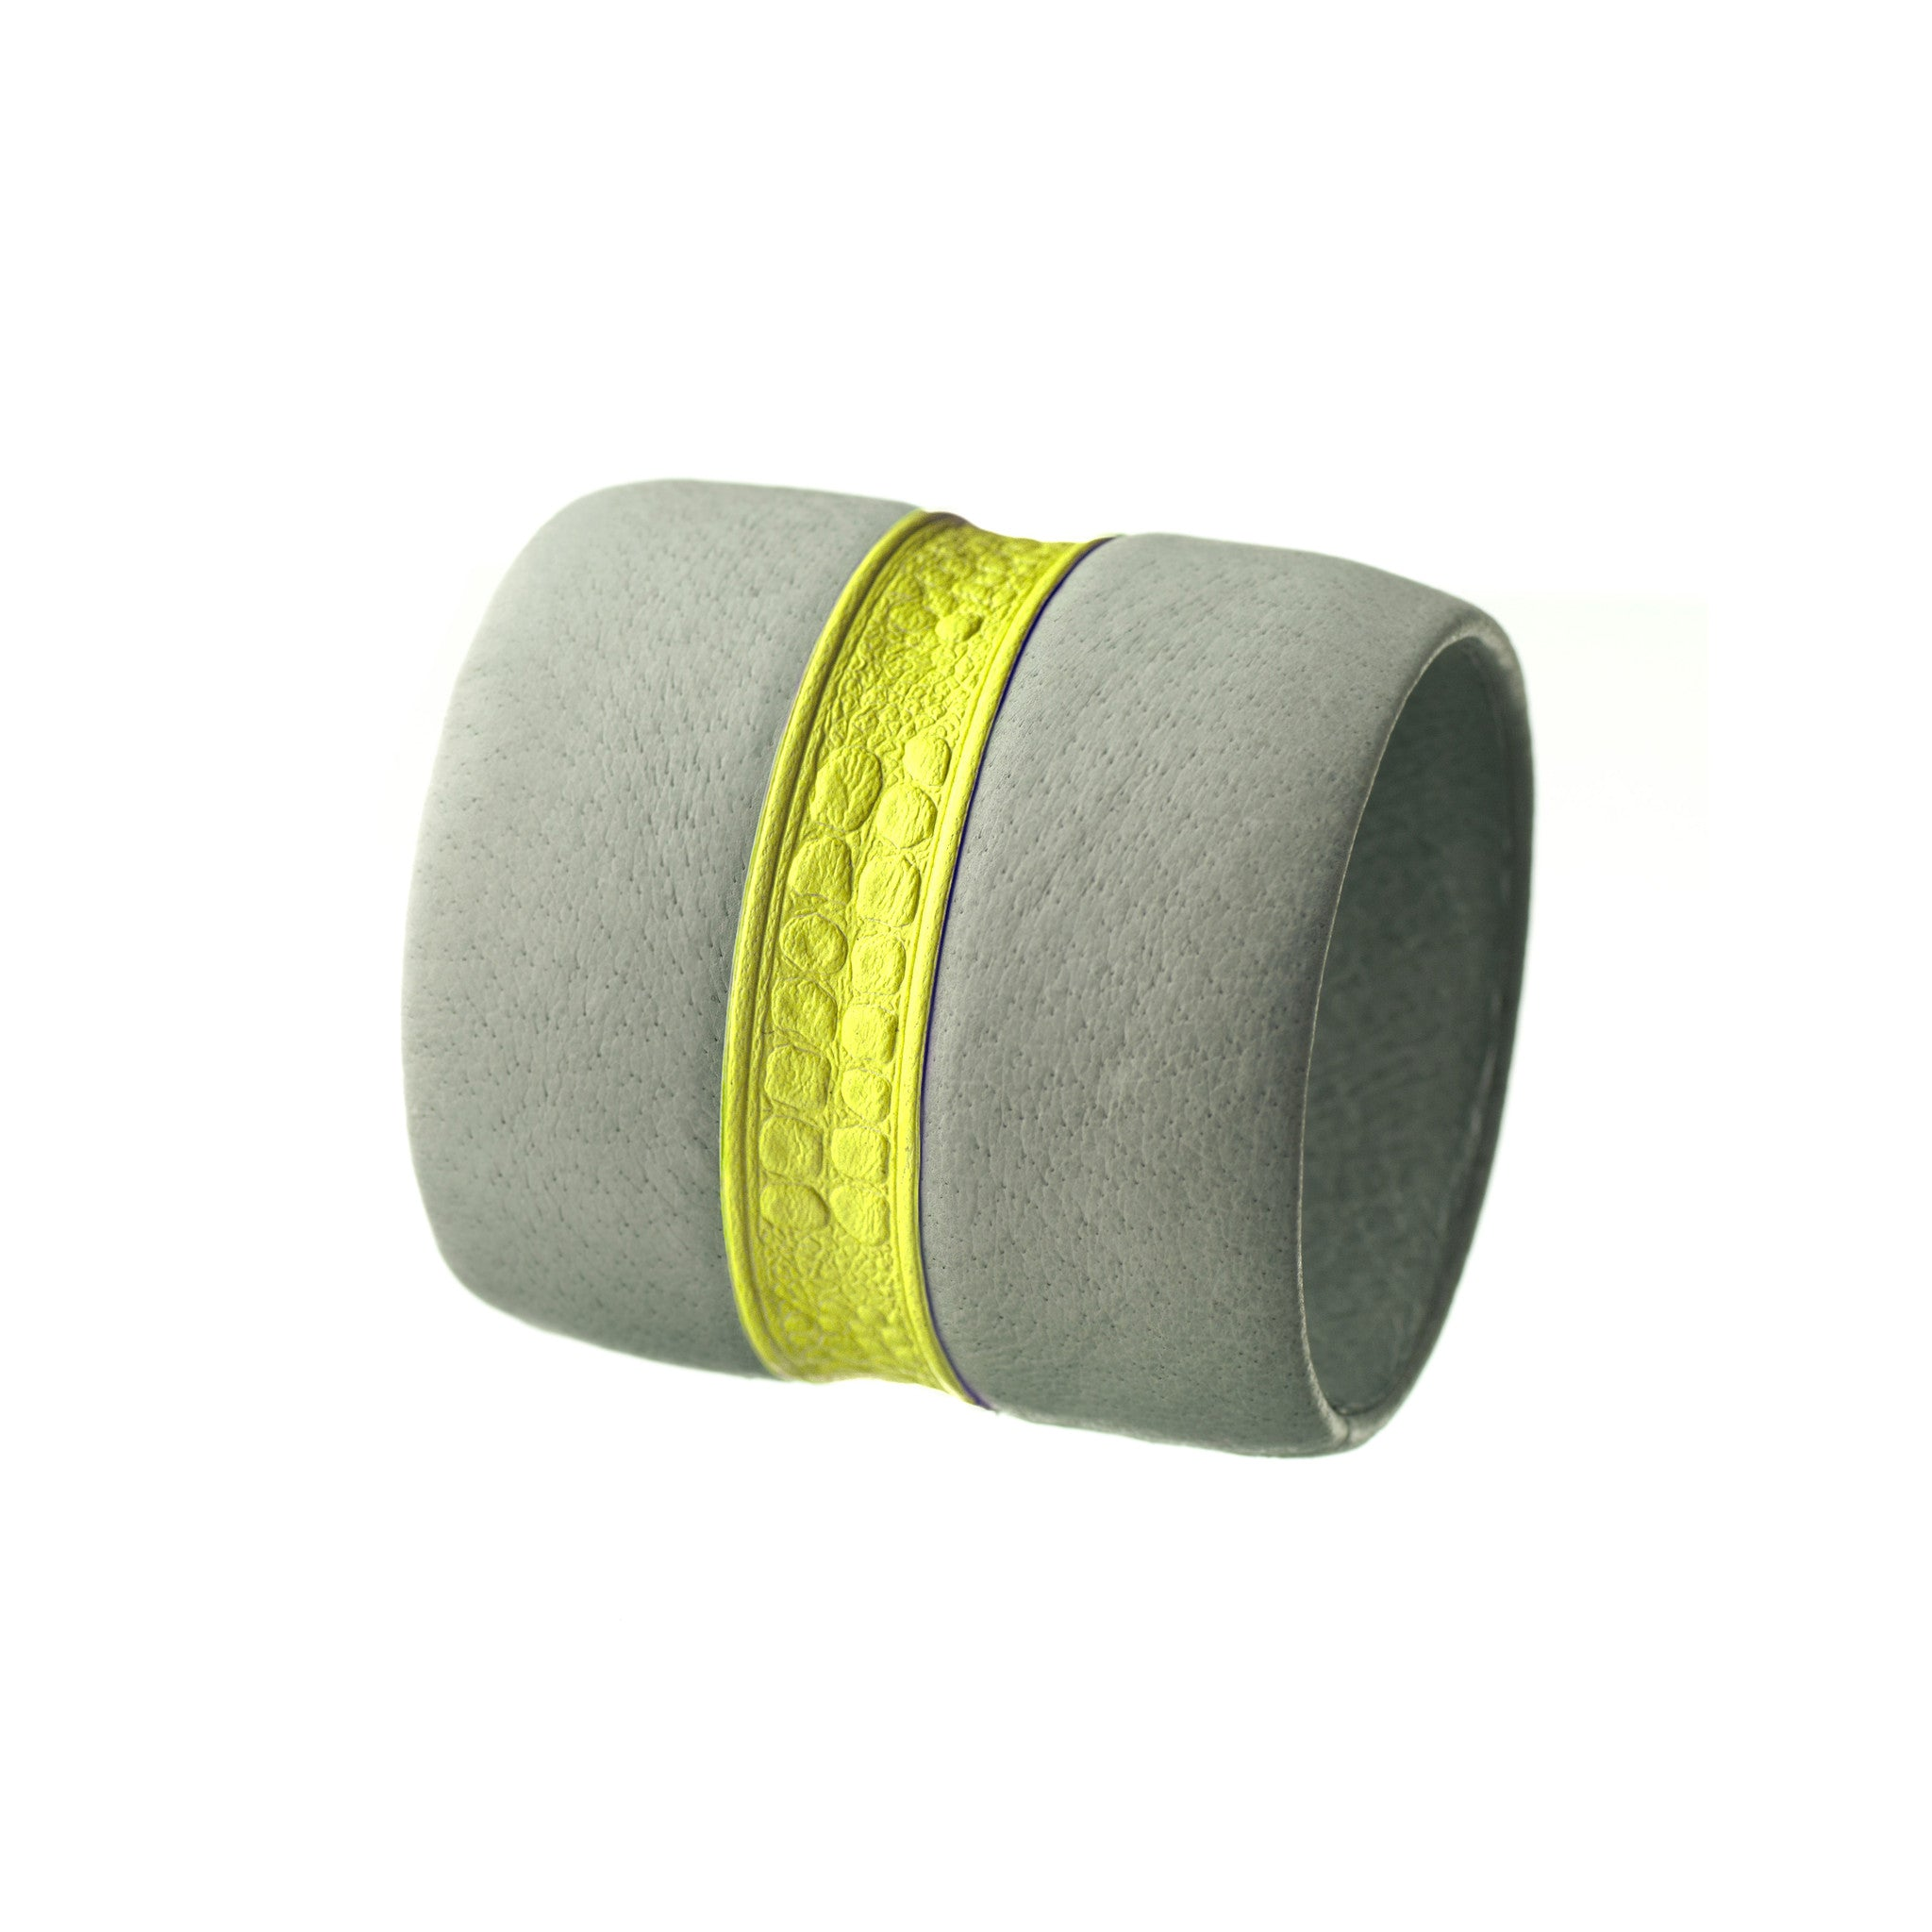 The Chloe ~ Large Chunky Gray and Neon Yellow Leather Bracelet